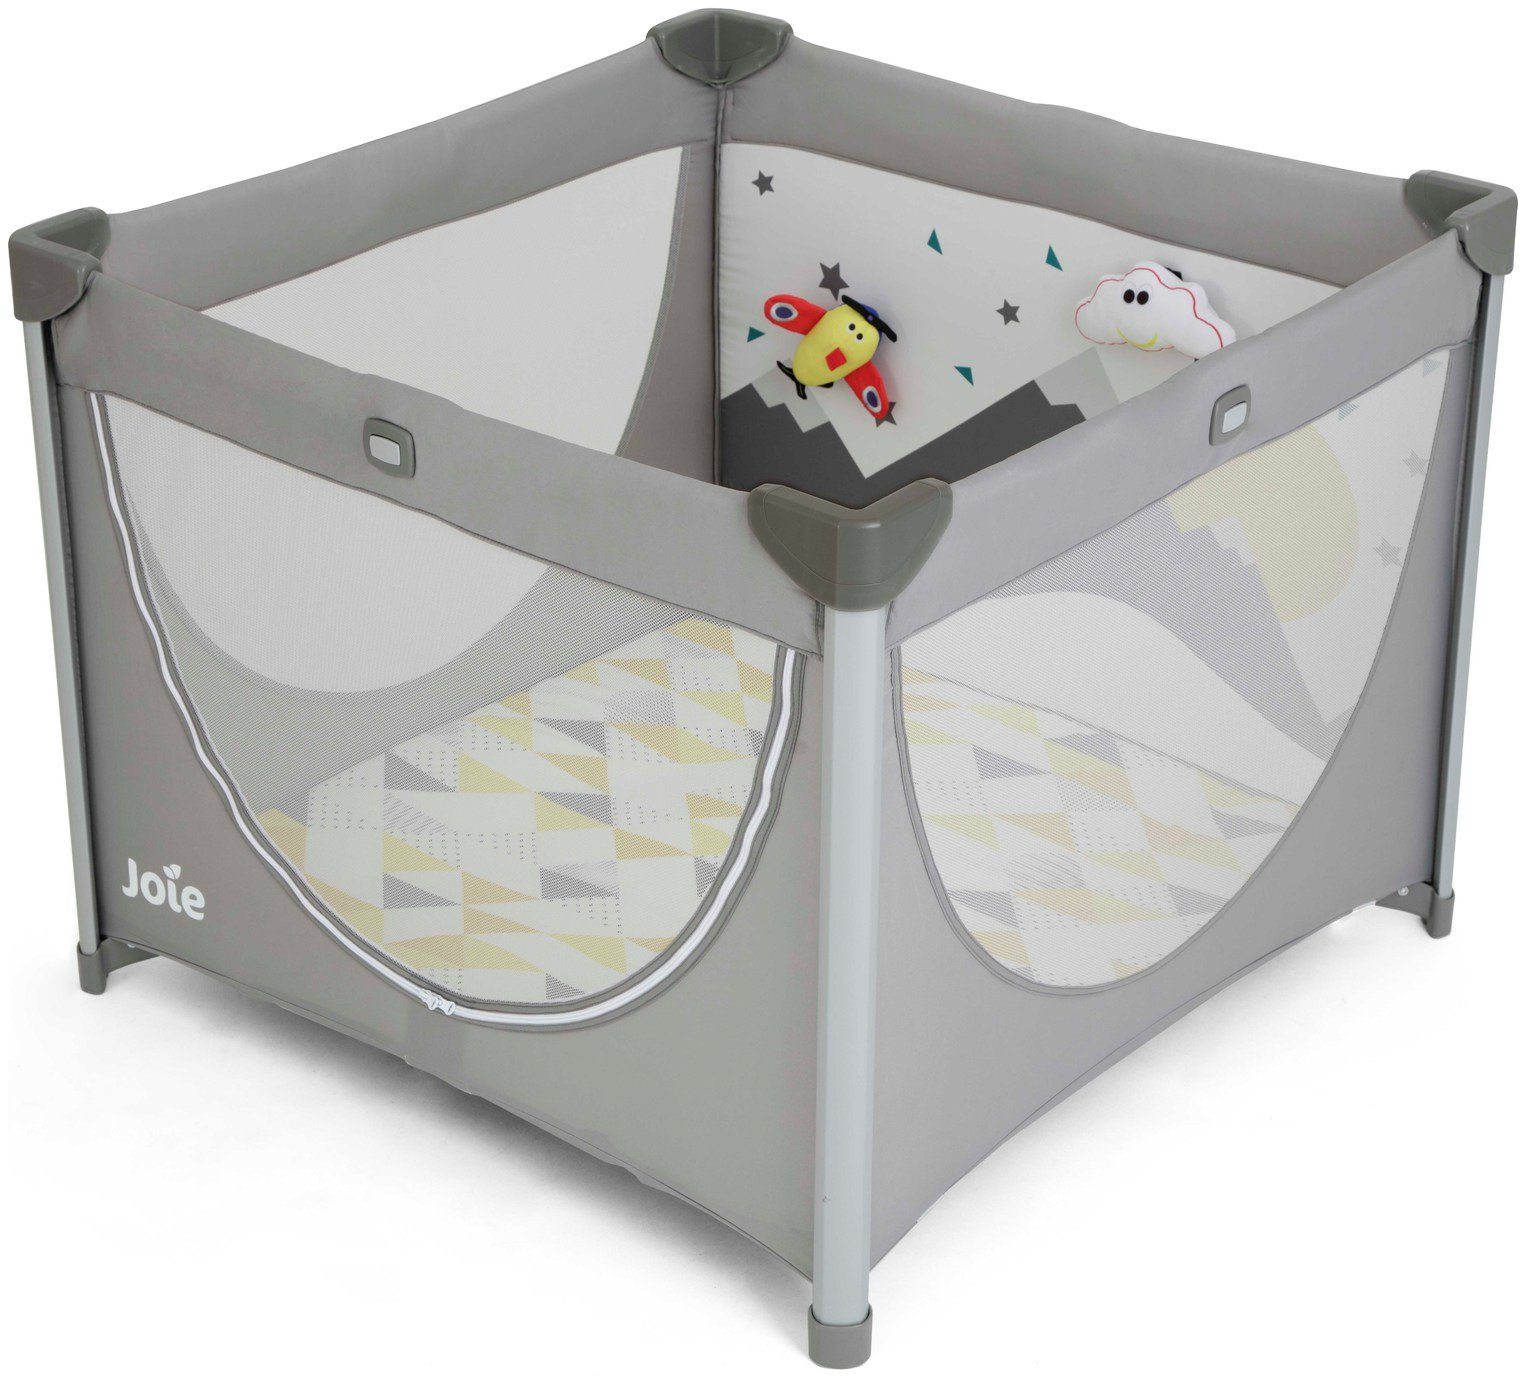 Joie Cheer Little Explorer Playpen